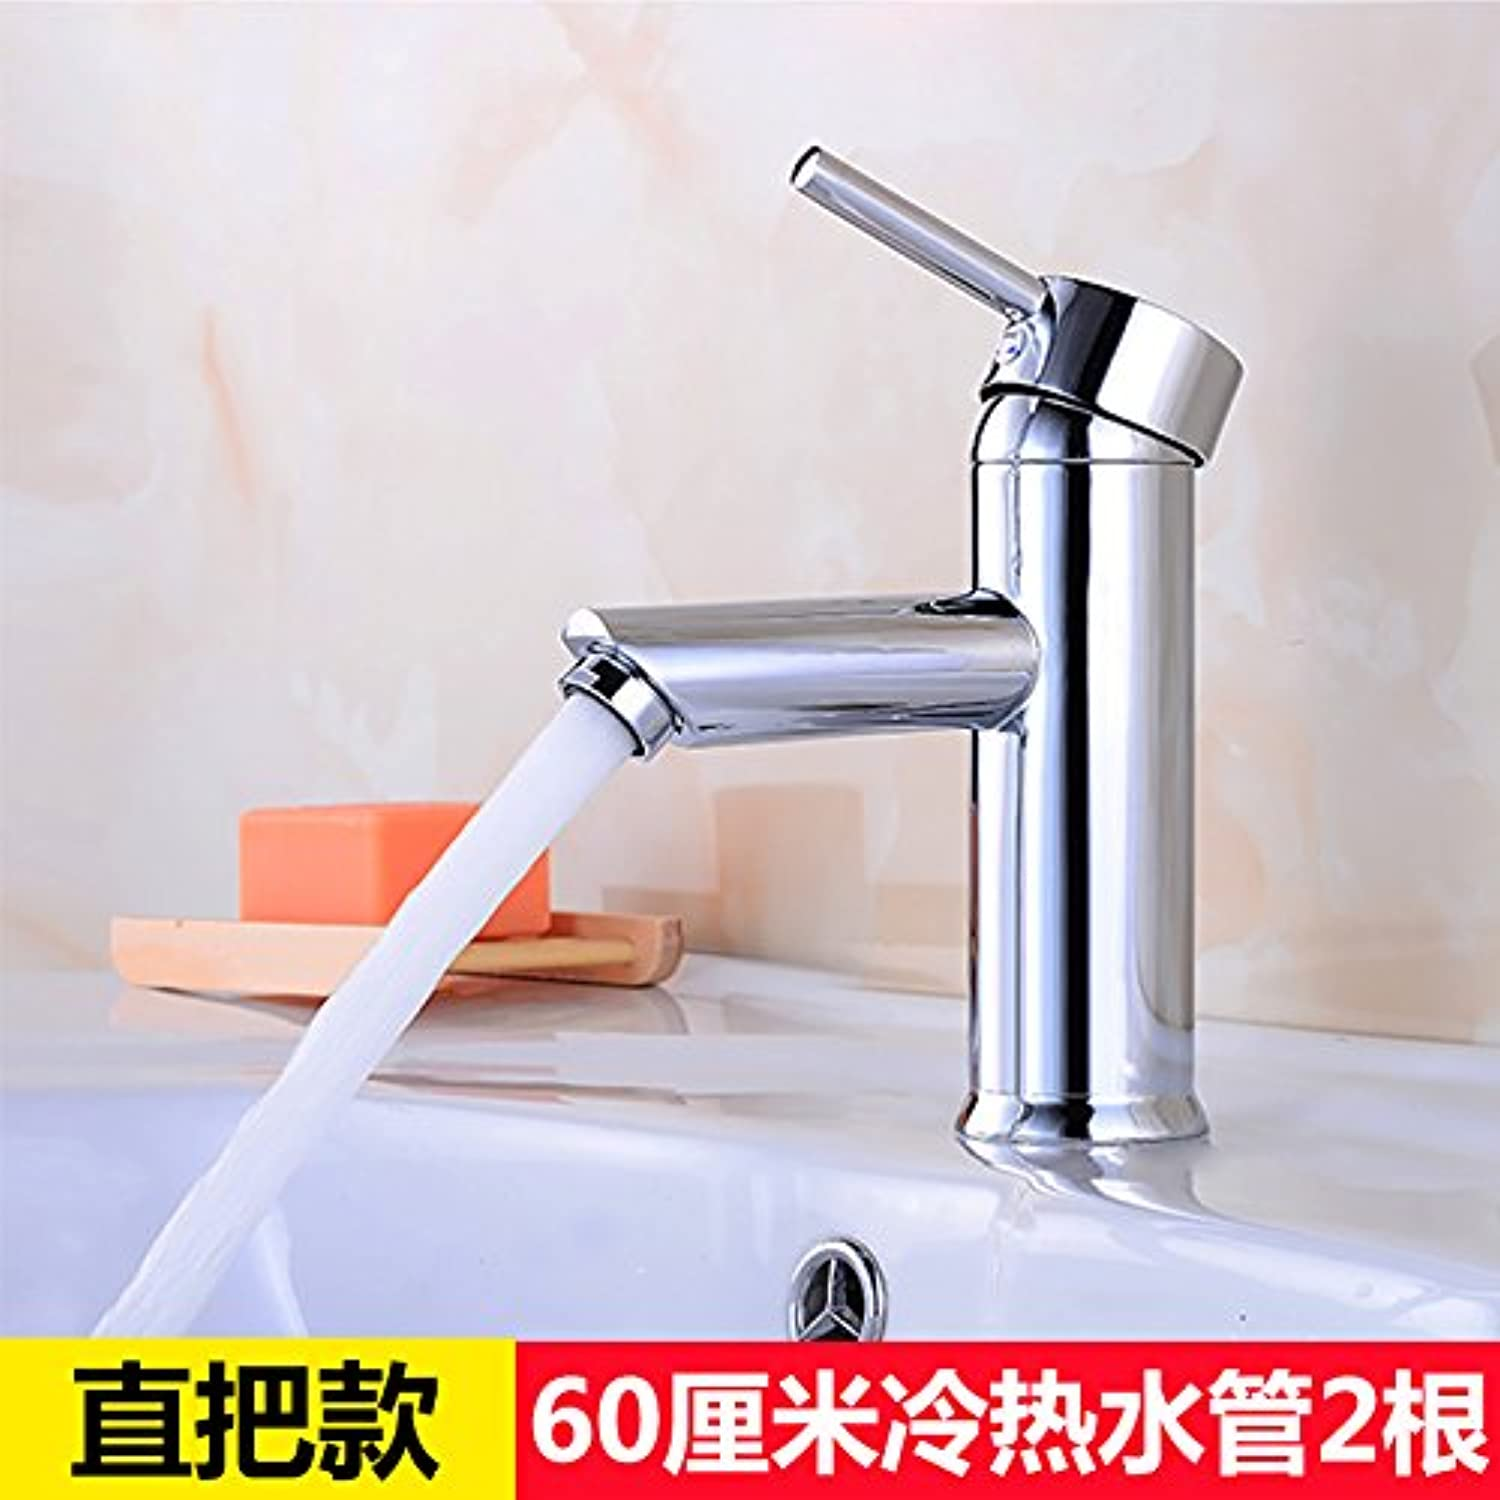 JWLT Washbasin faucet hot and cold water faucet, copper basin, basin, faucet, washbasin, single hole, cold and hot faucet, 60 centimetre cold and hot water pipe 2